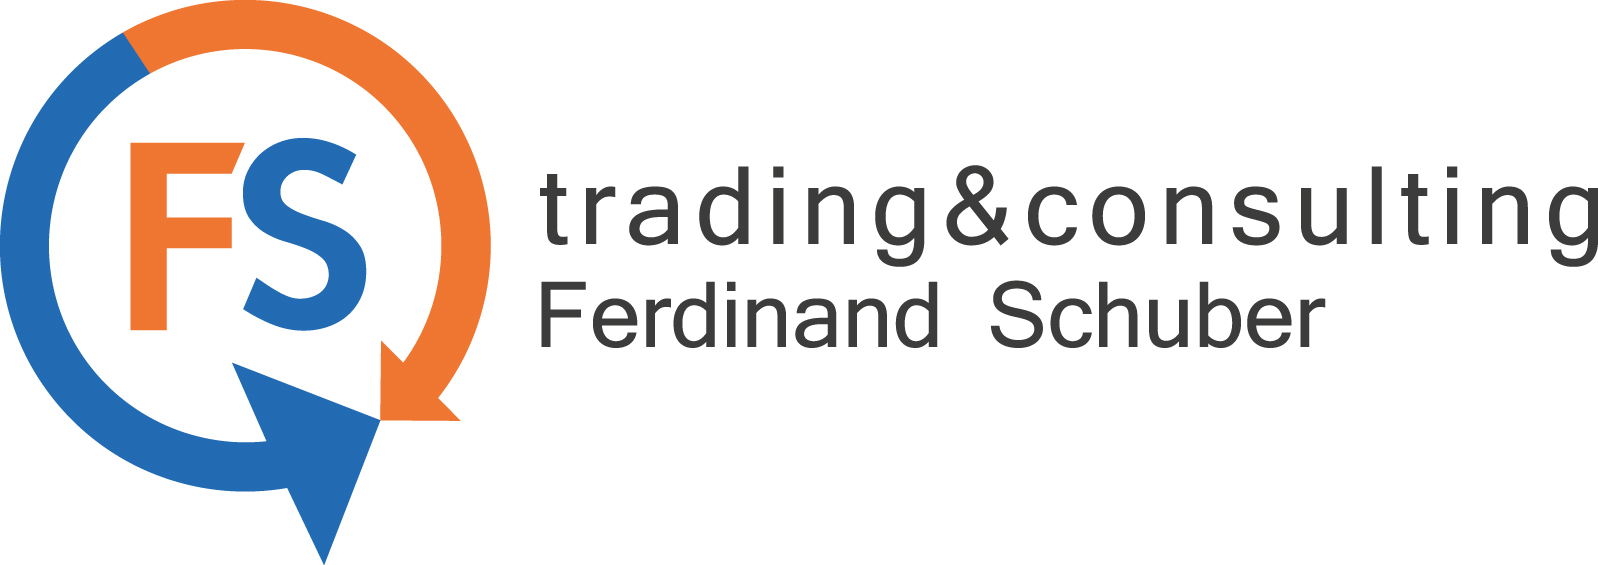 FS_trading & consulting